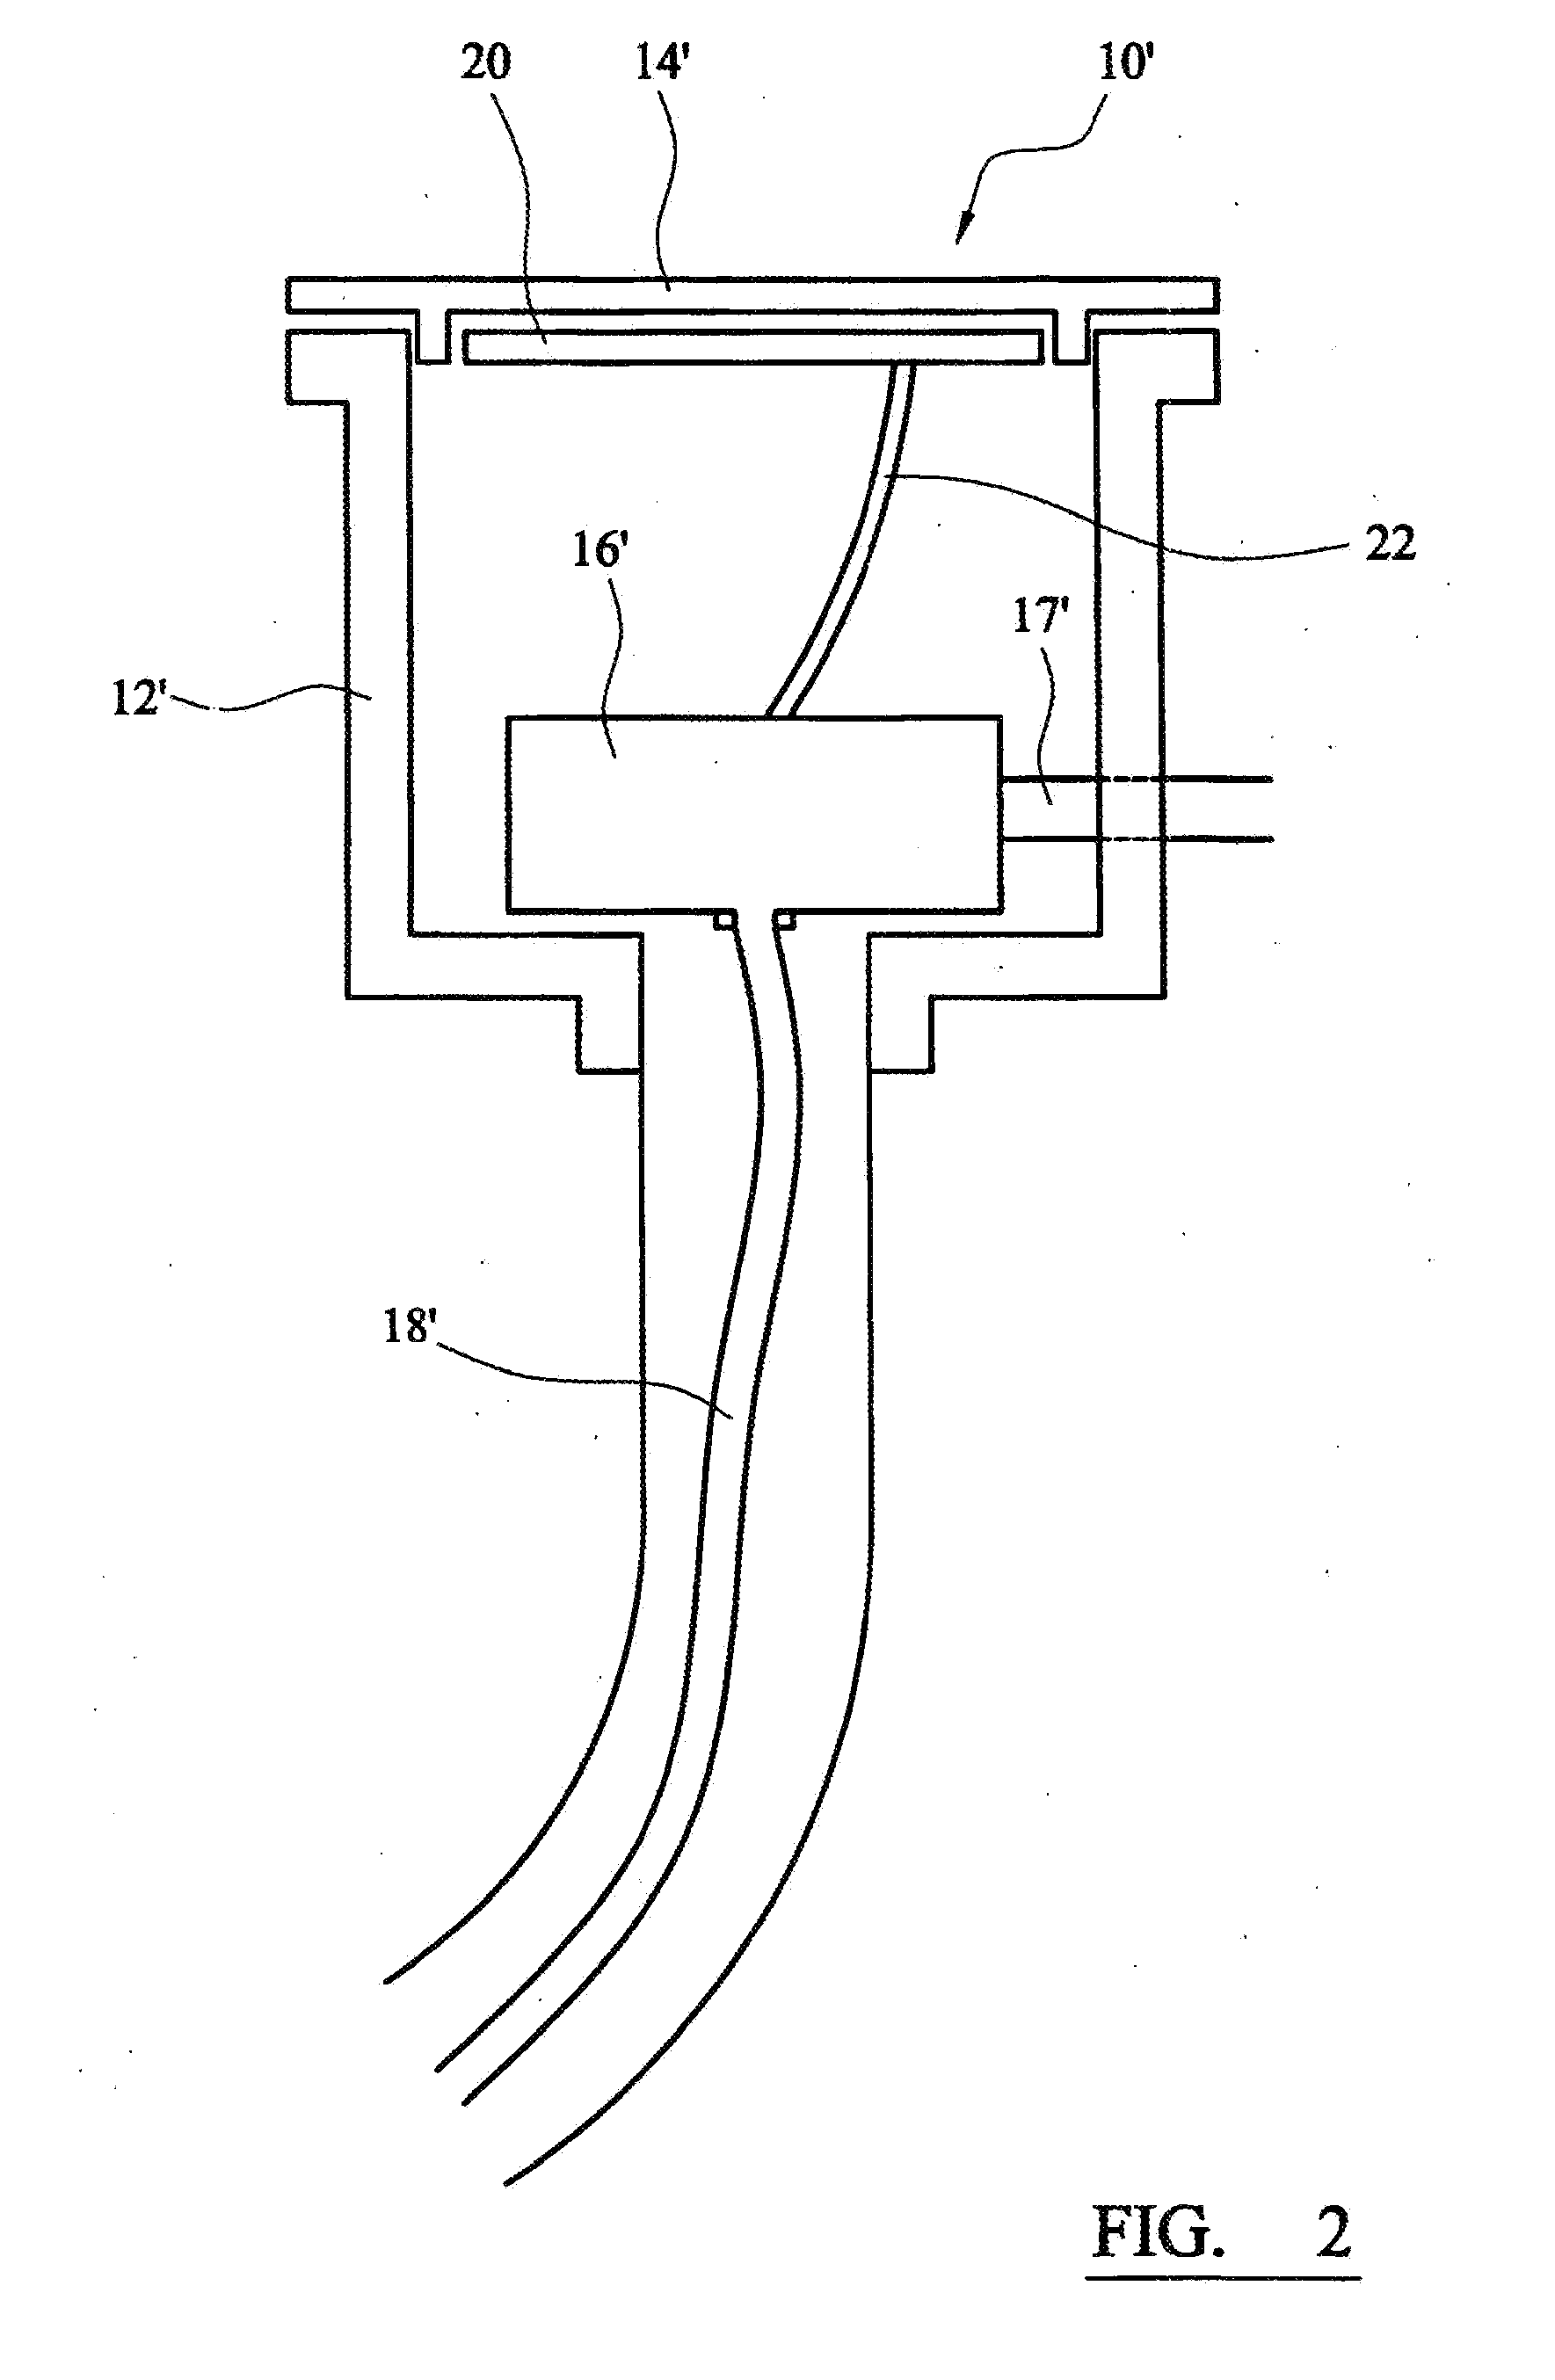 pool light junction box wiring diagram pool image patent us20090027902 deck box for use underwater swimming on pool light junction box wiring diagram